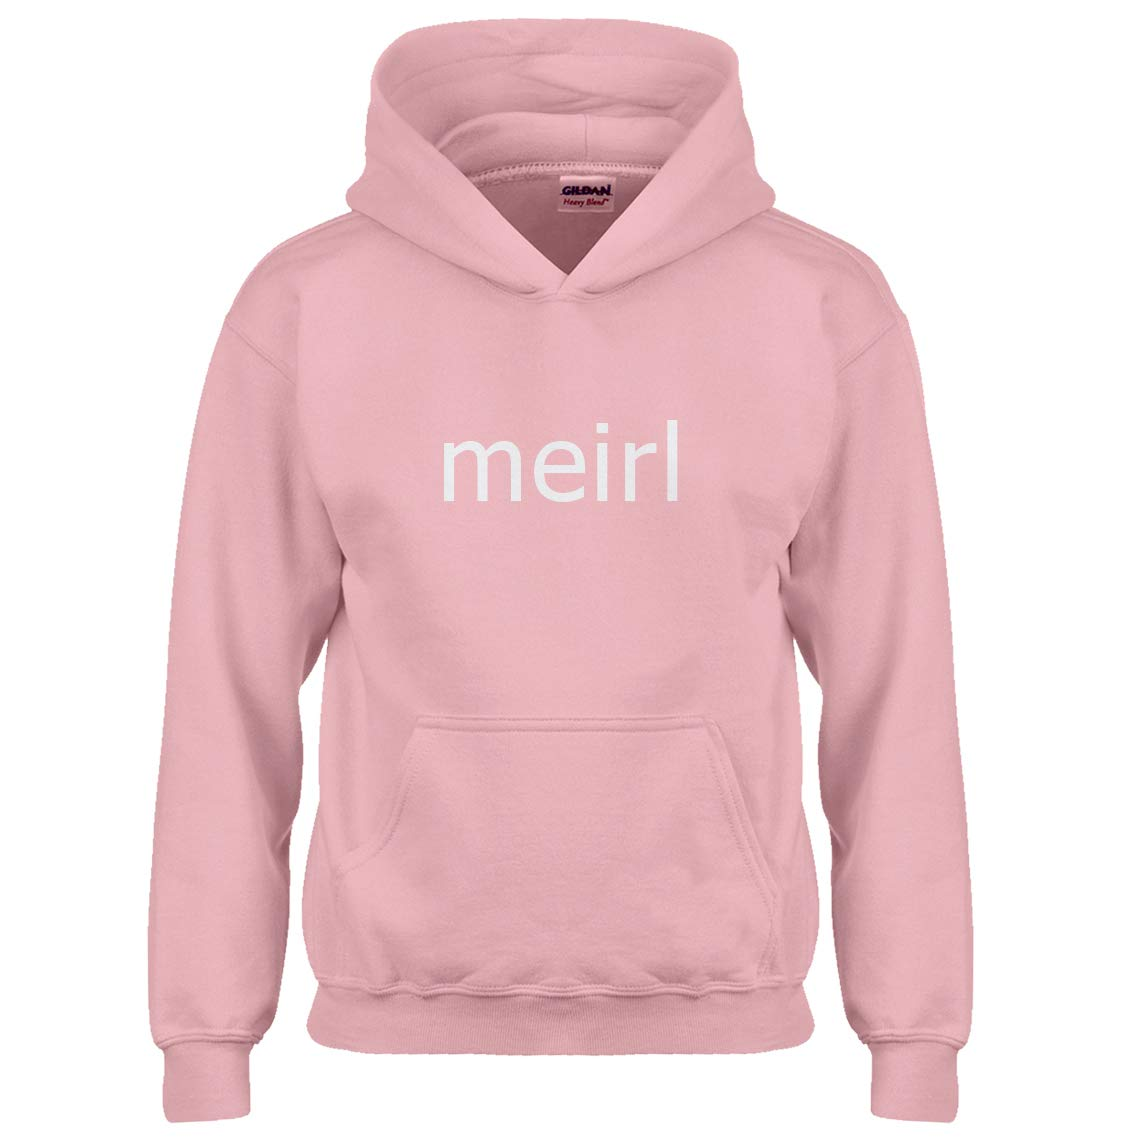 Indica Plateau Youth Meirl Kids Hoodie